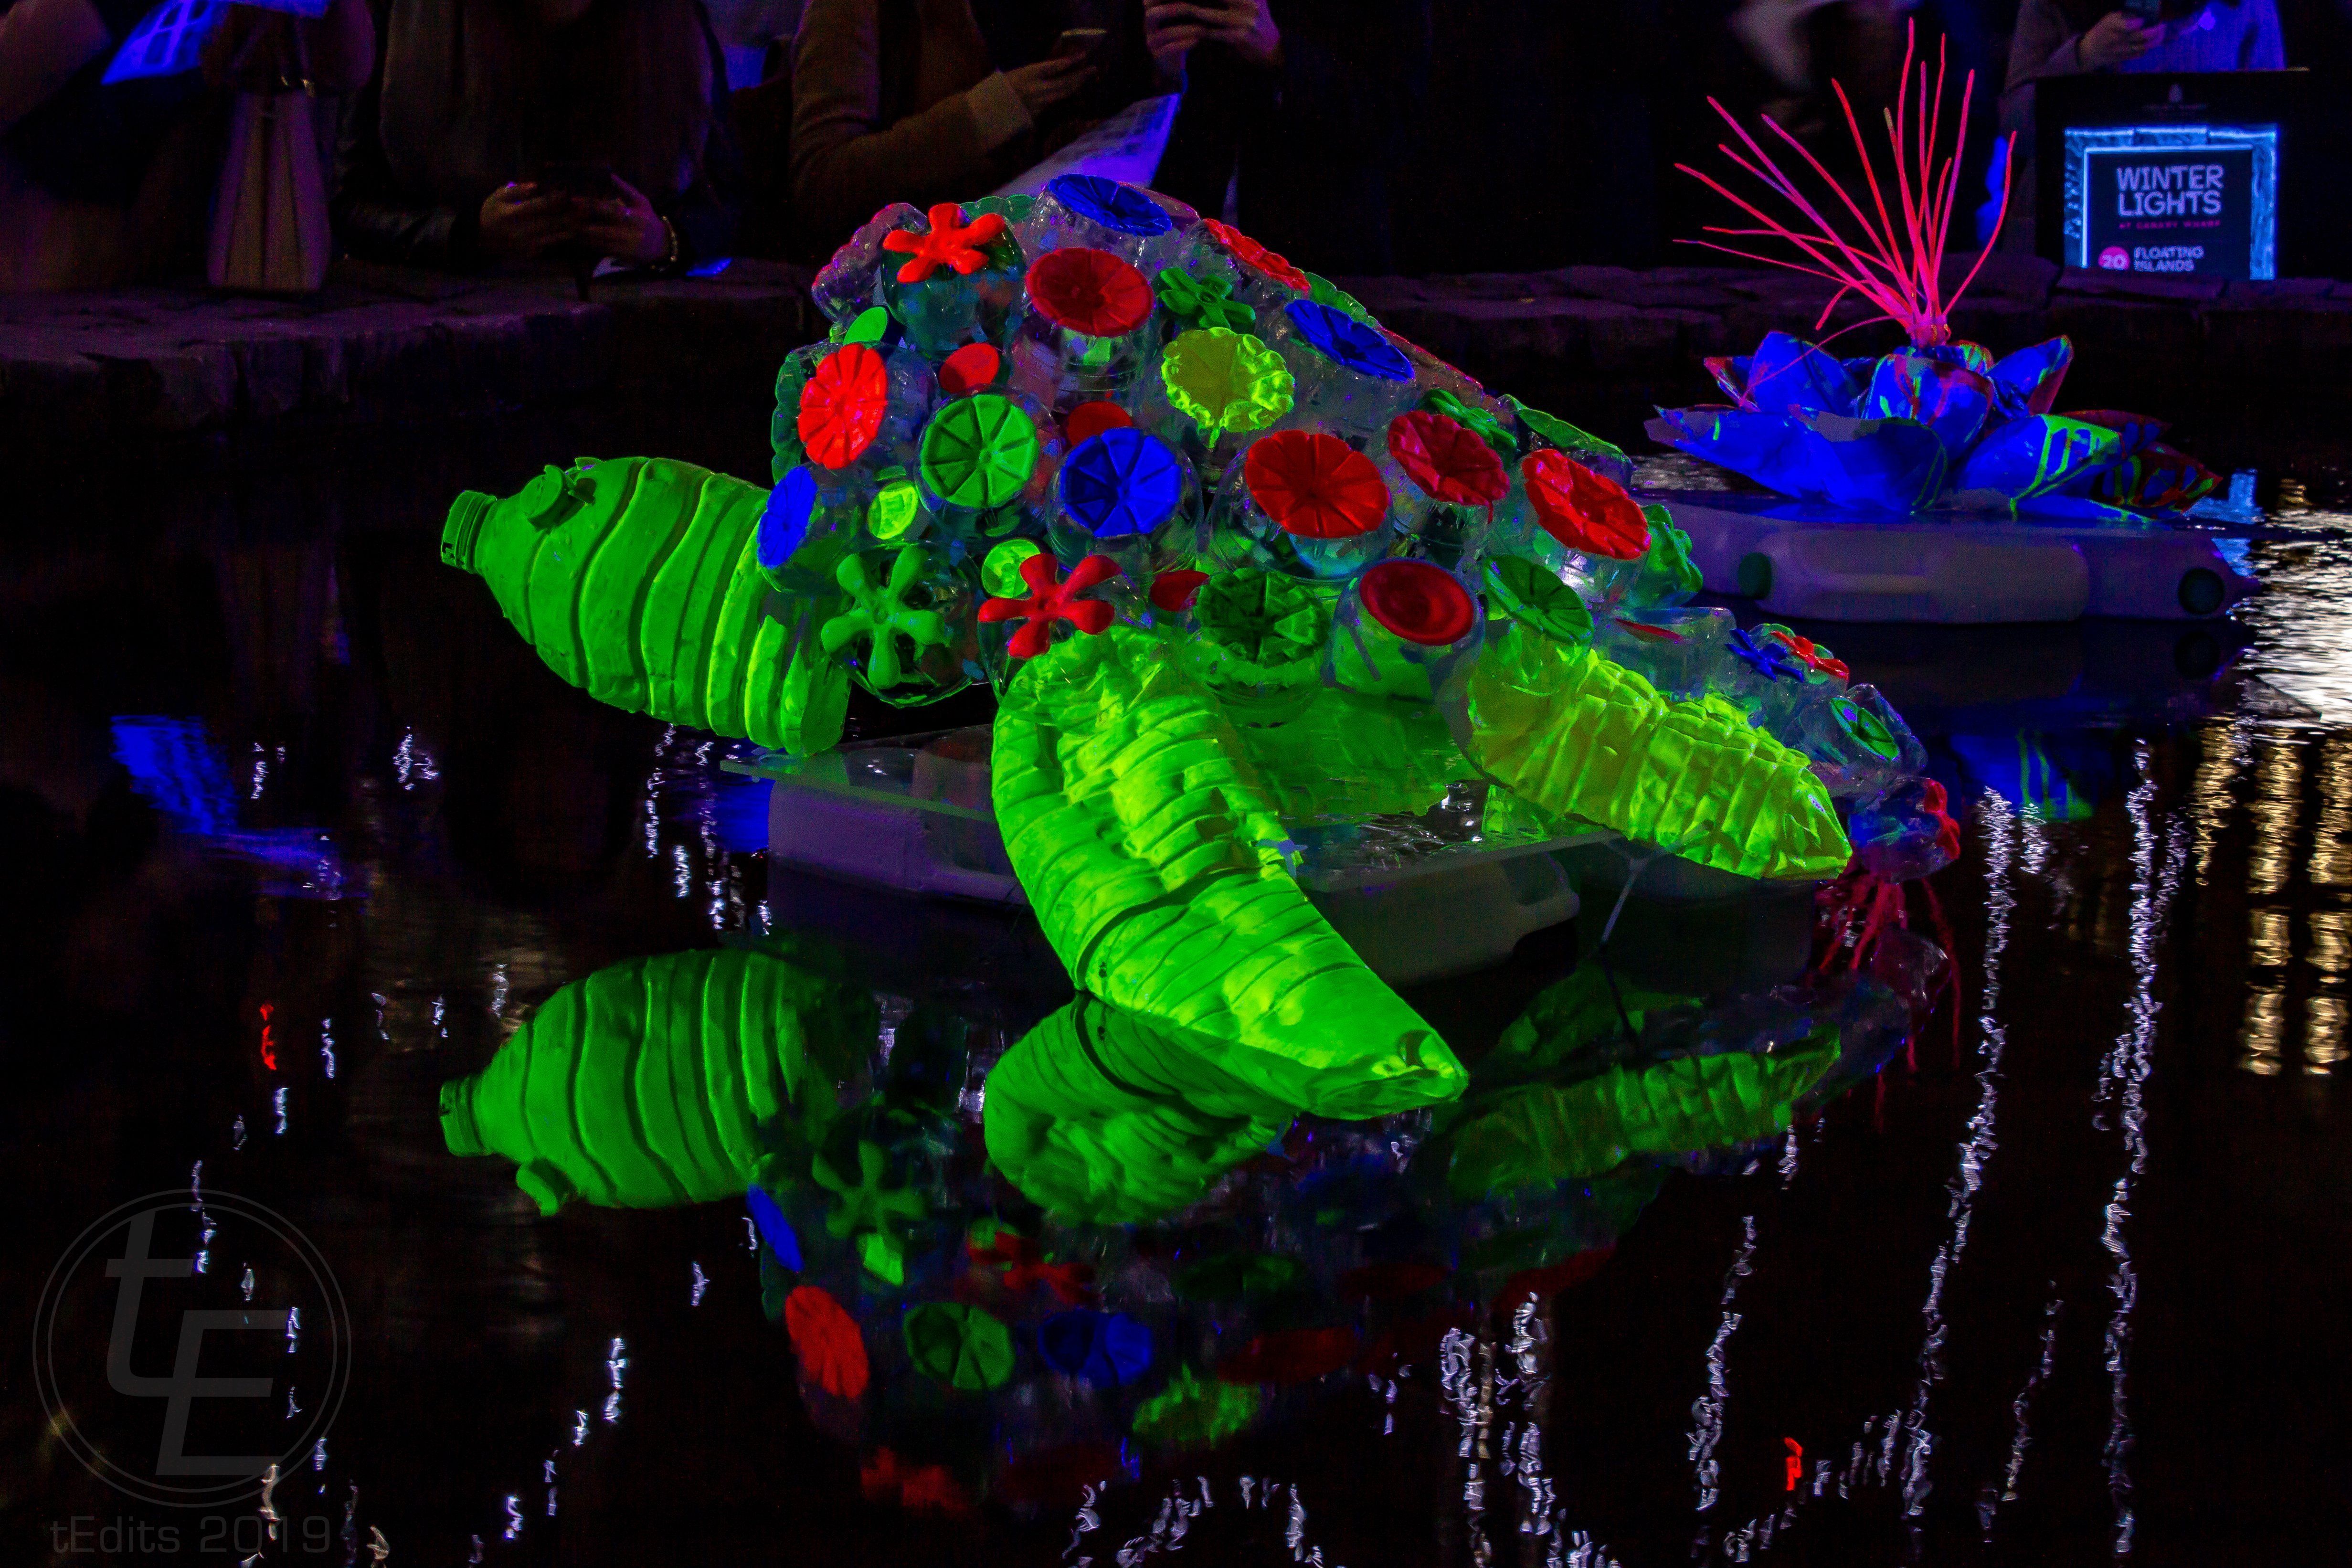 Canary Wharf Winter Lights 2019 - Floating Islands, Murude Mehmet, Turtle